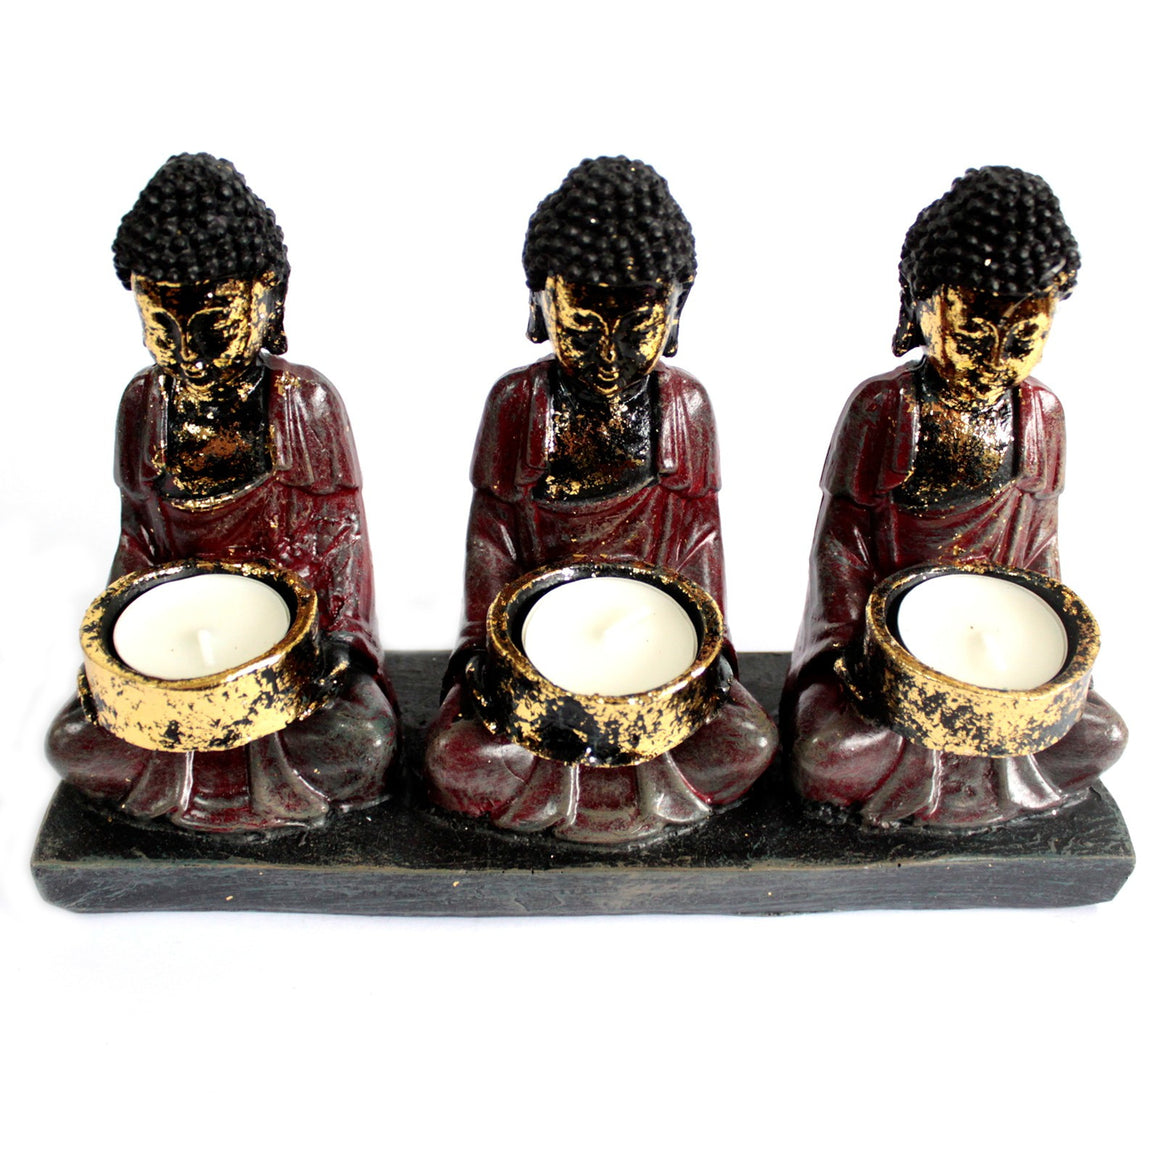 Three Sitting Buddha Red Antique Figurine Candle Holder